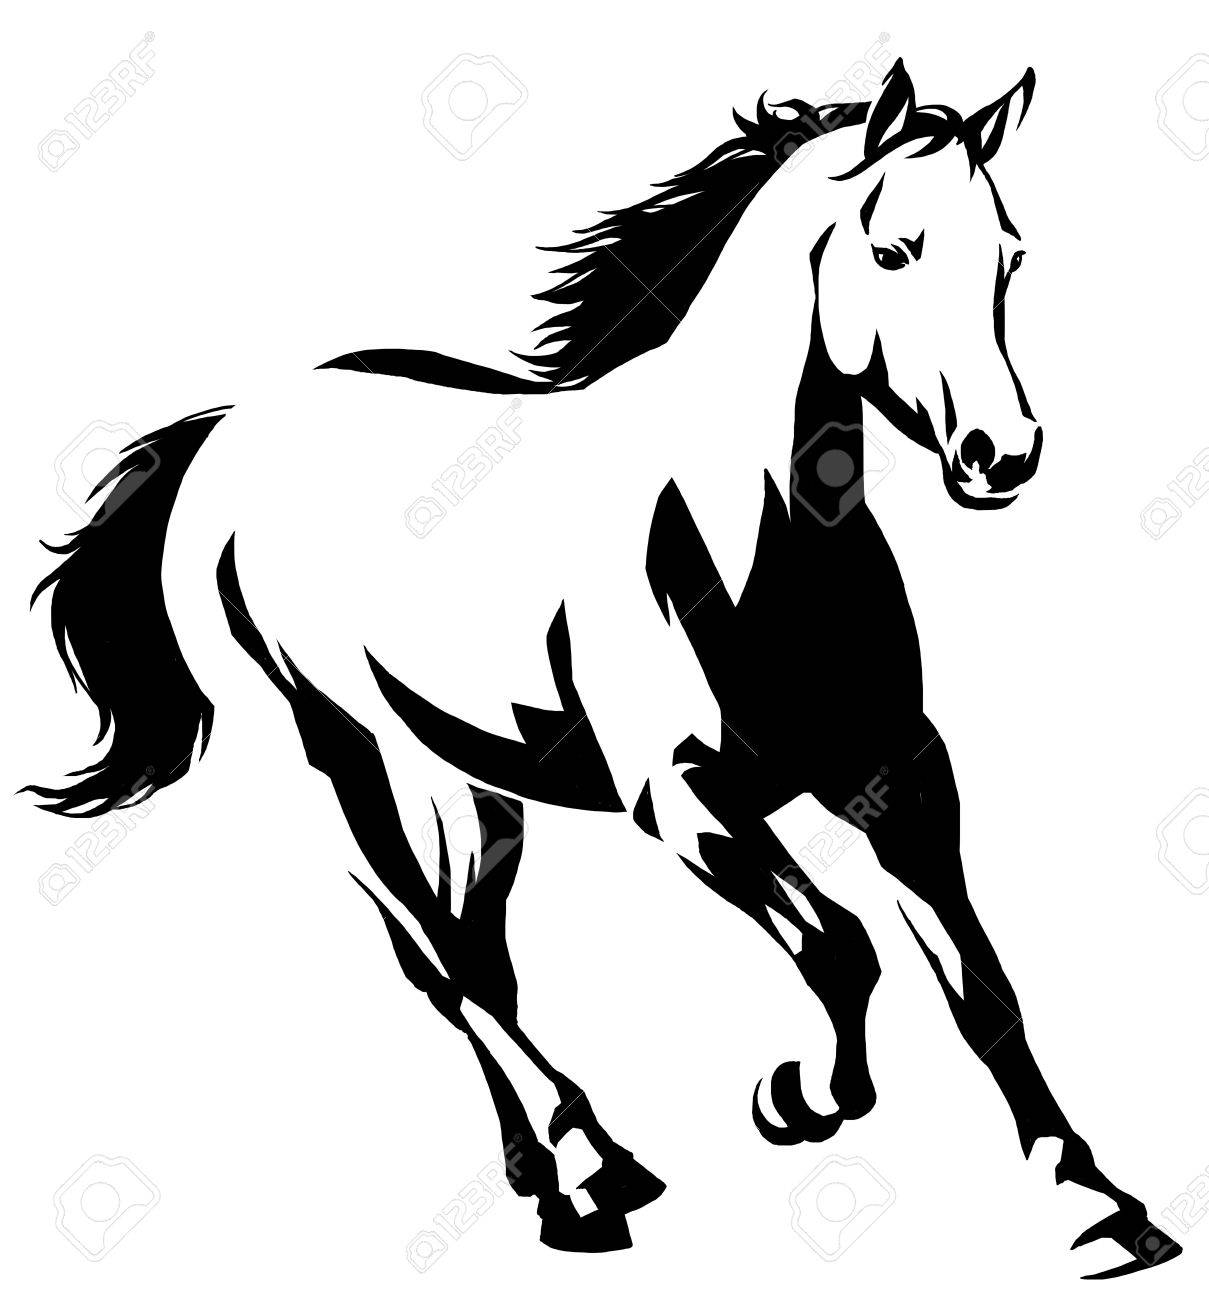 black and white linear draw horse illustration - 69447378